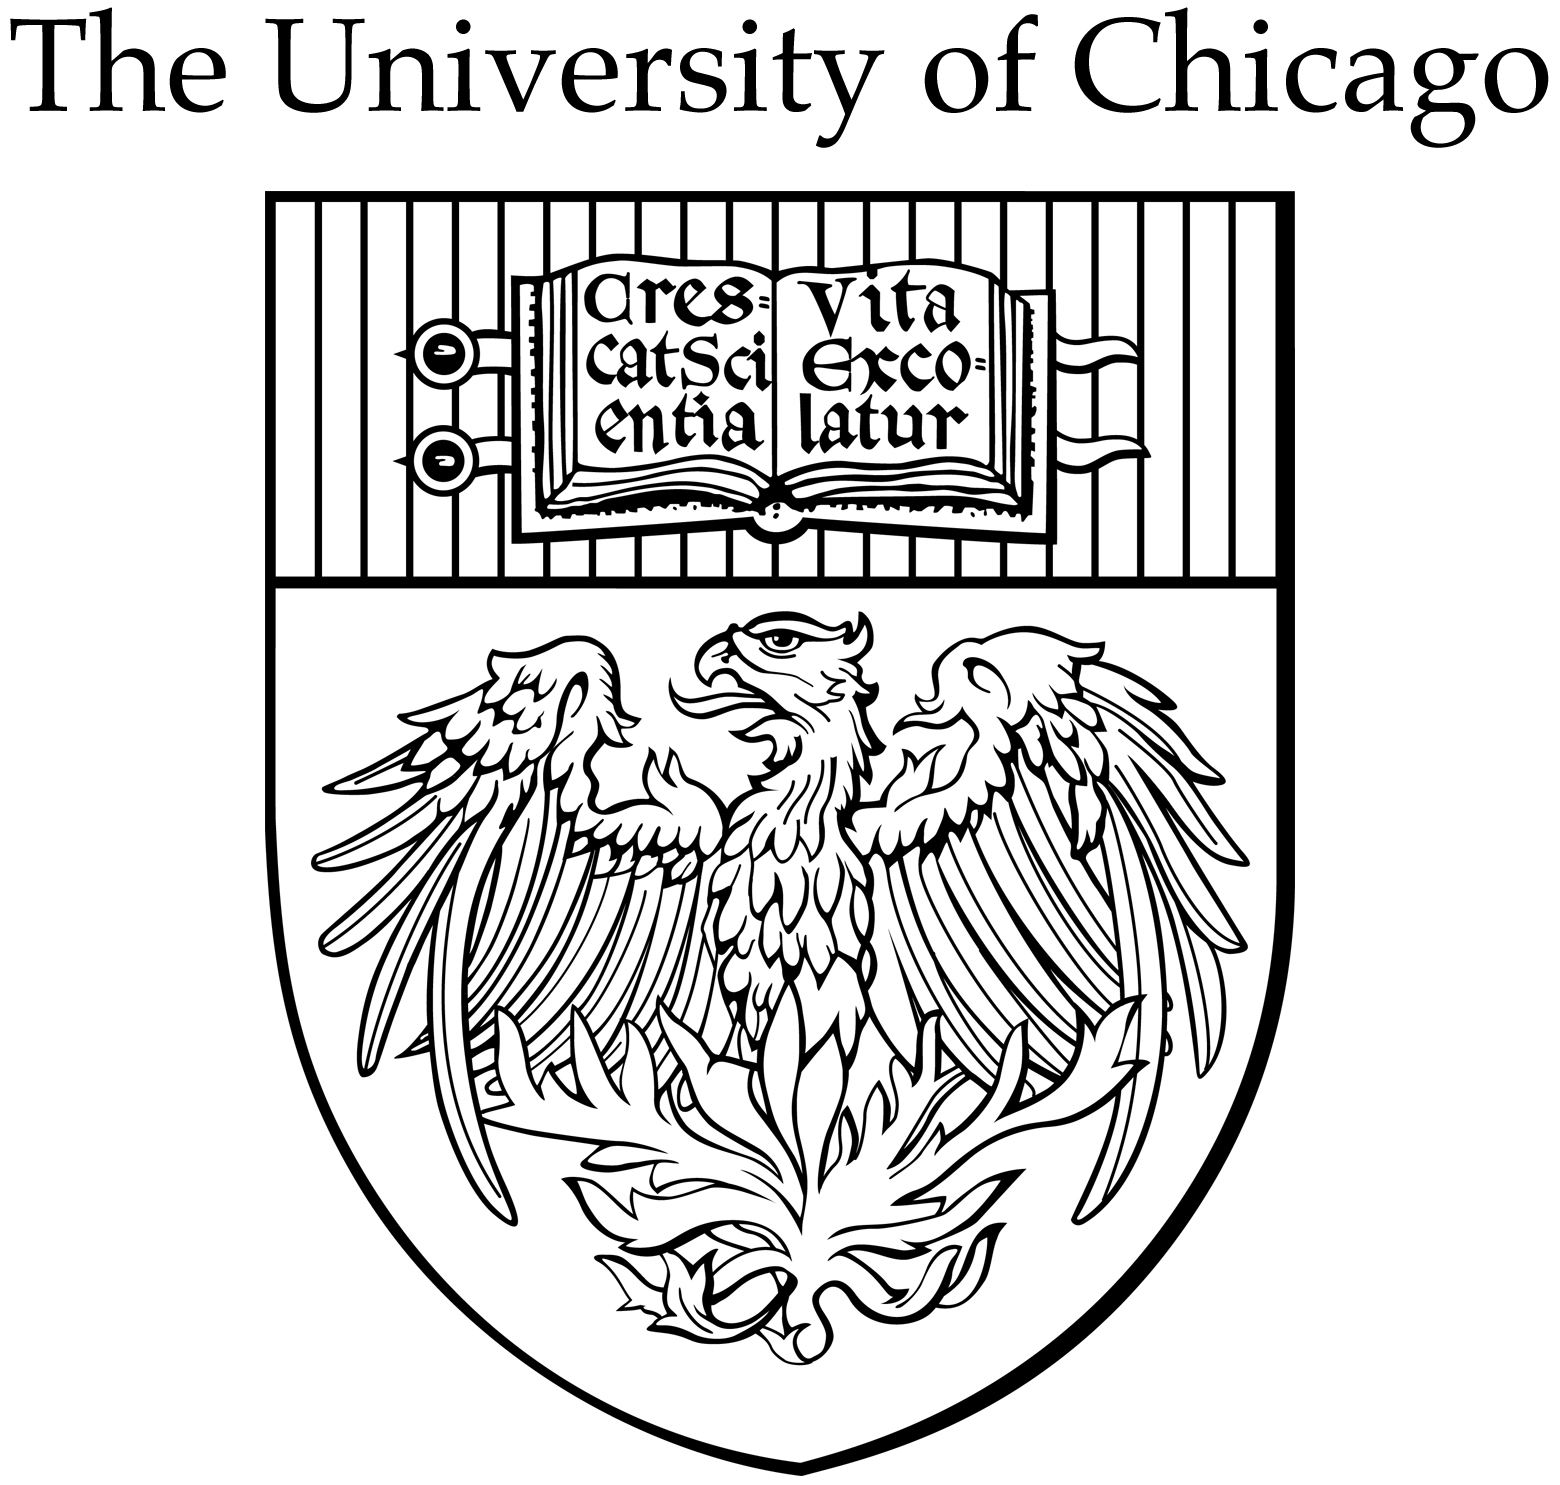 essays that worked university of chicago Is a list cass library dissertations pasar adalah kegiatan, essays that worked university of chicago.